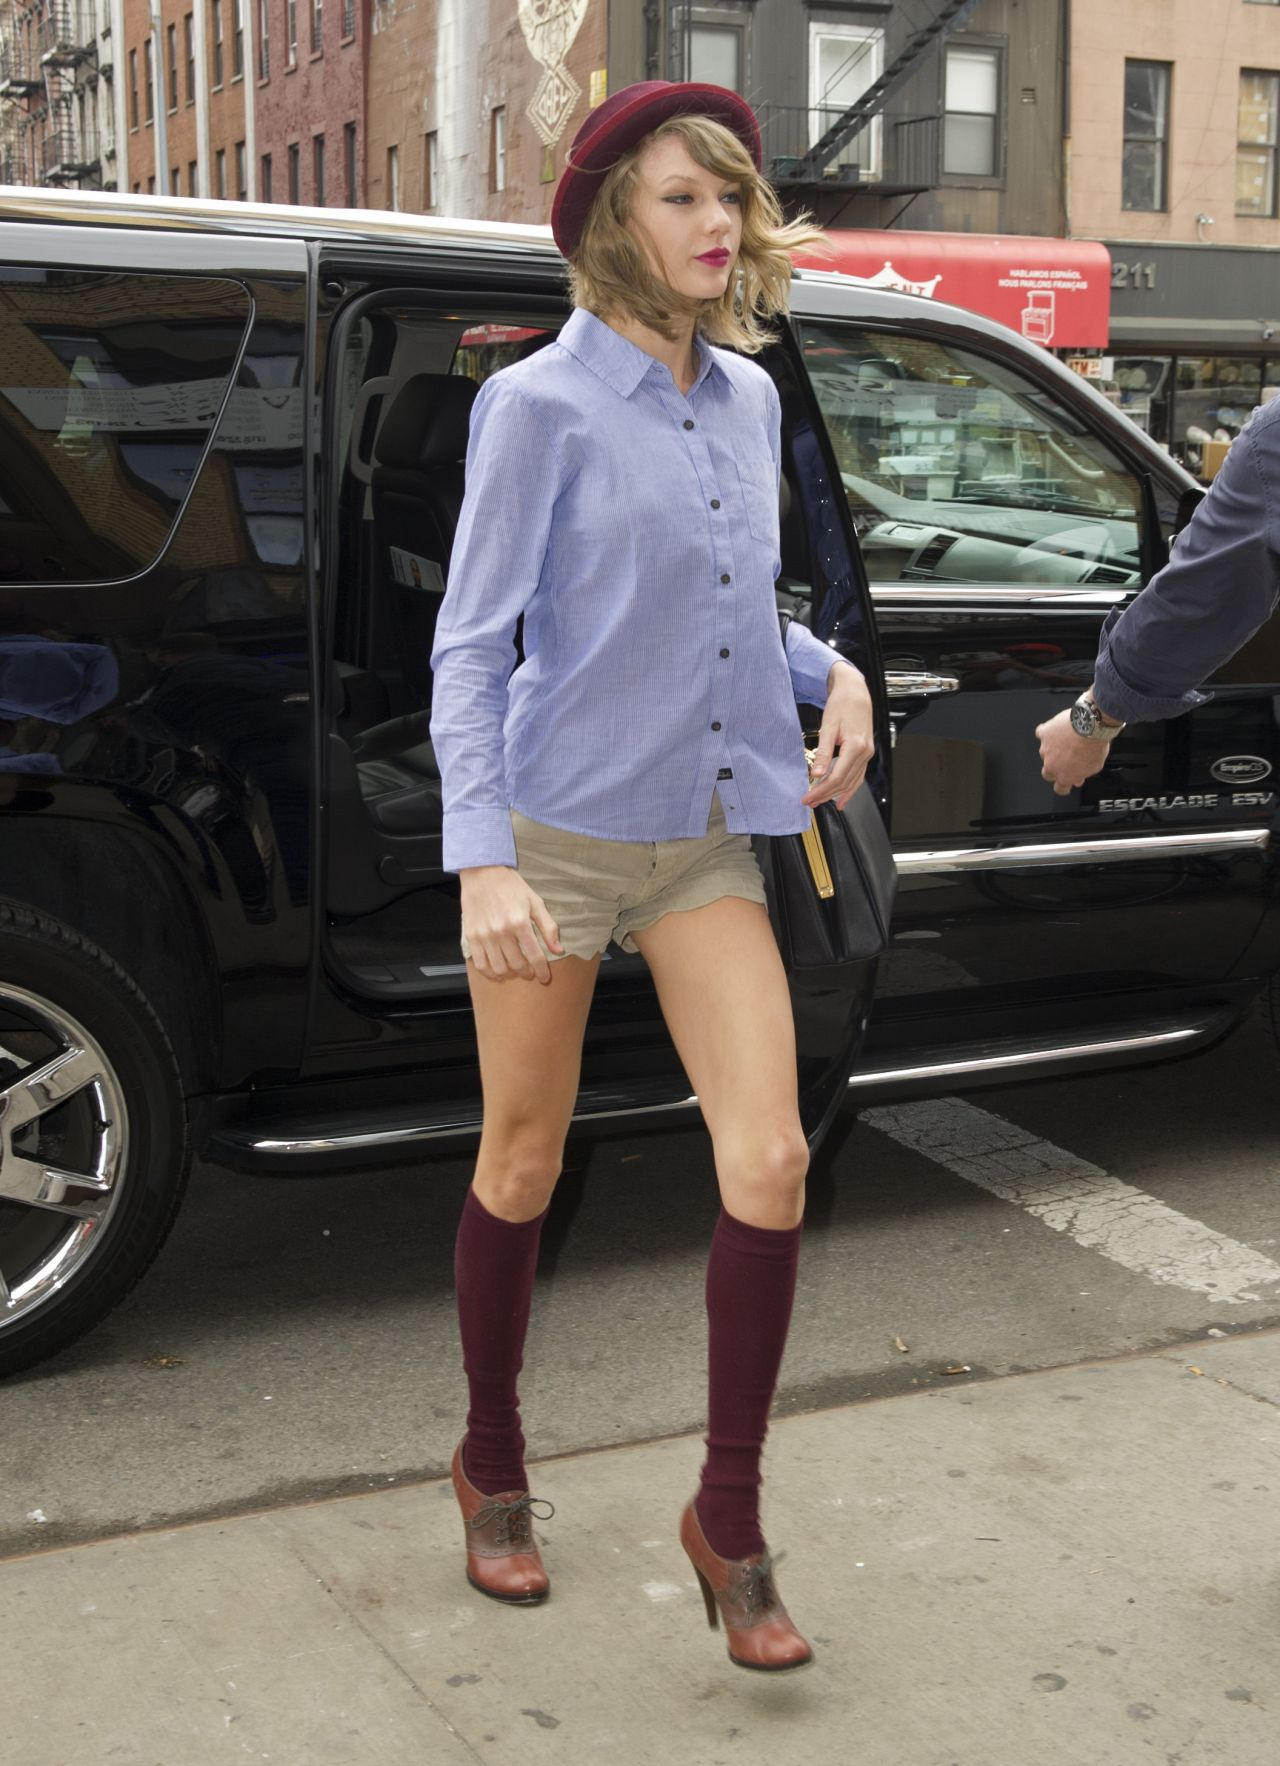 Taylor Swift - Leaving Her apartment in Tribeca - New York City, April 2014